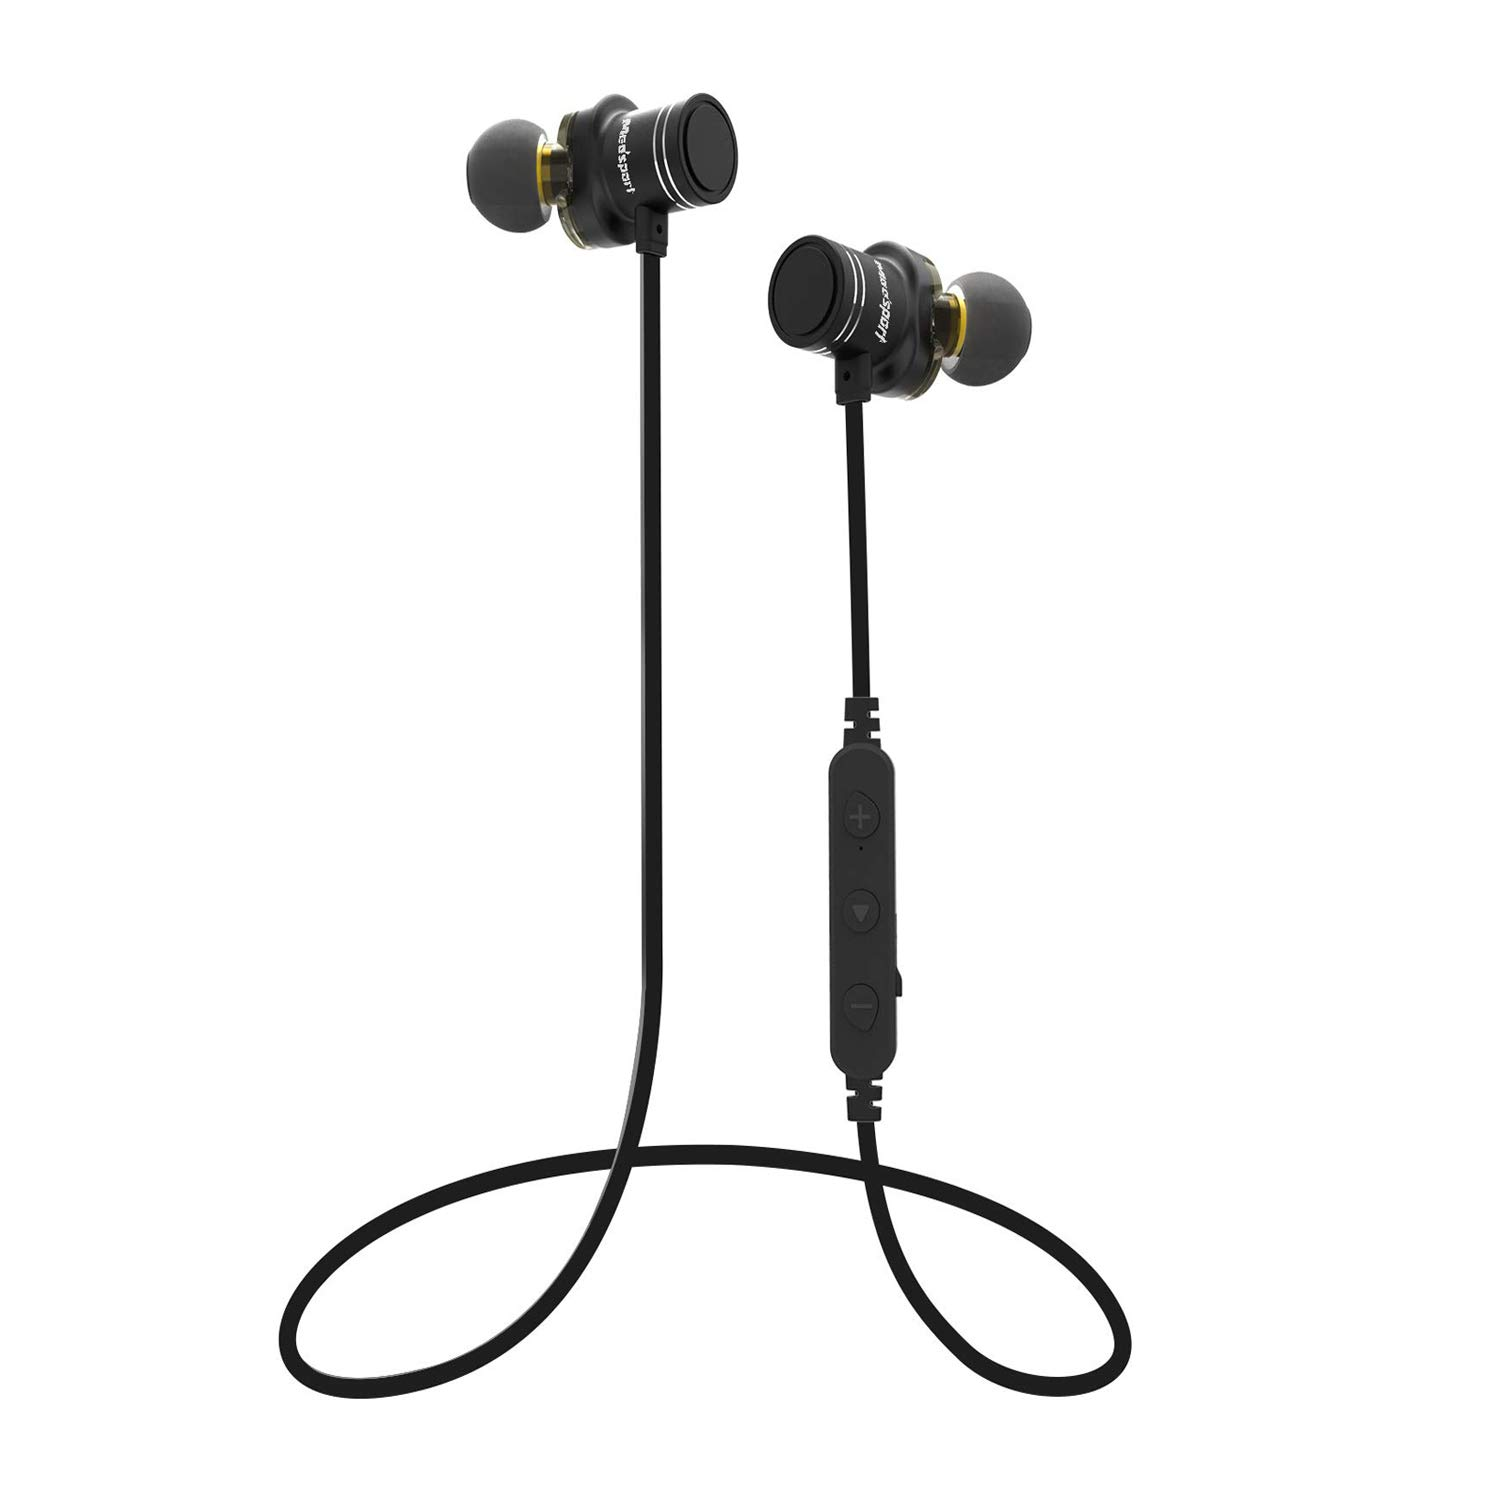 Mee sport X670 Bluetooth Headphones Waterproof Wireless Sports Earphones, Richer Bass in-Ear Earbuds with Mic, 8 Hours Playtime Noise Cancelling Headsets for Running Gym Comfy Fast Pairing